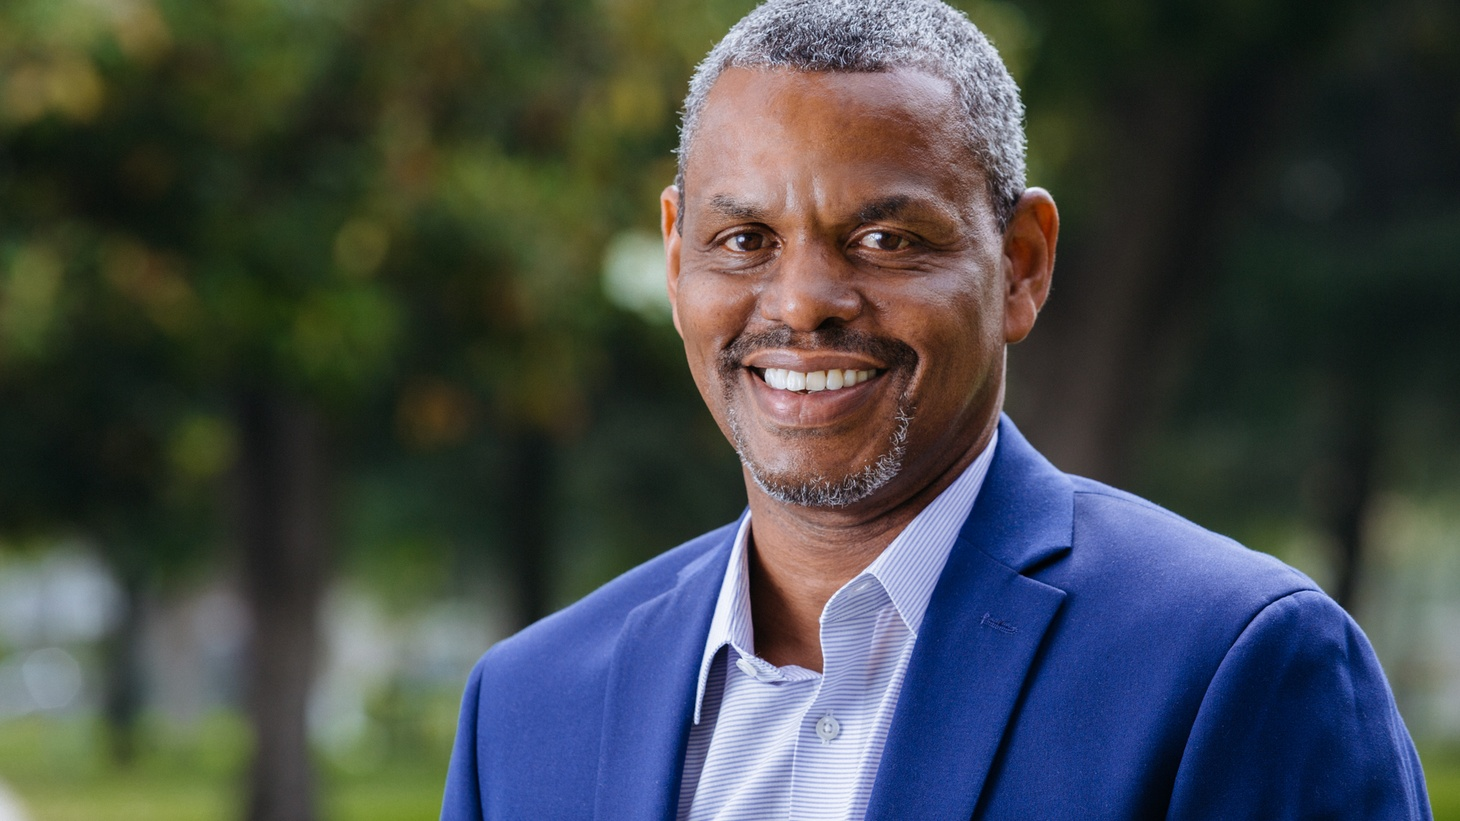 """""""You're making an investment that brings back a younger generation of Black and Brown people who will replenish the community's culture based on their lifestyles,"""" says author Michael Anderson on why first-time homeowners of color should receive subsidies."""